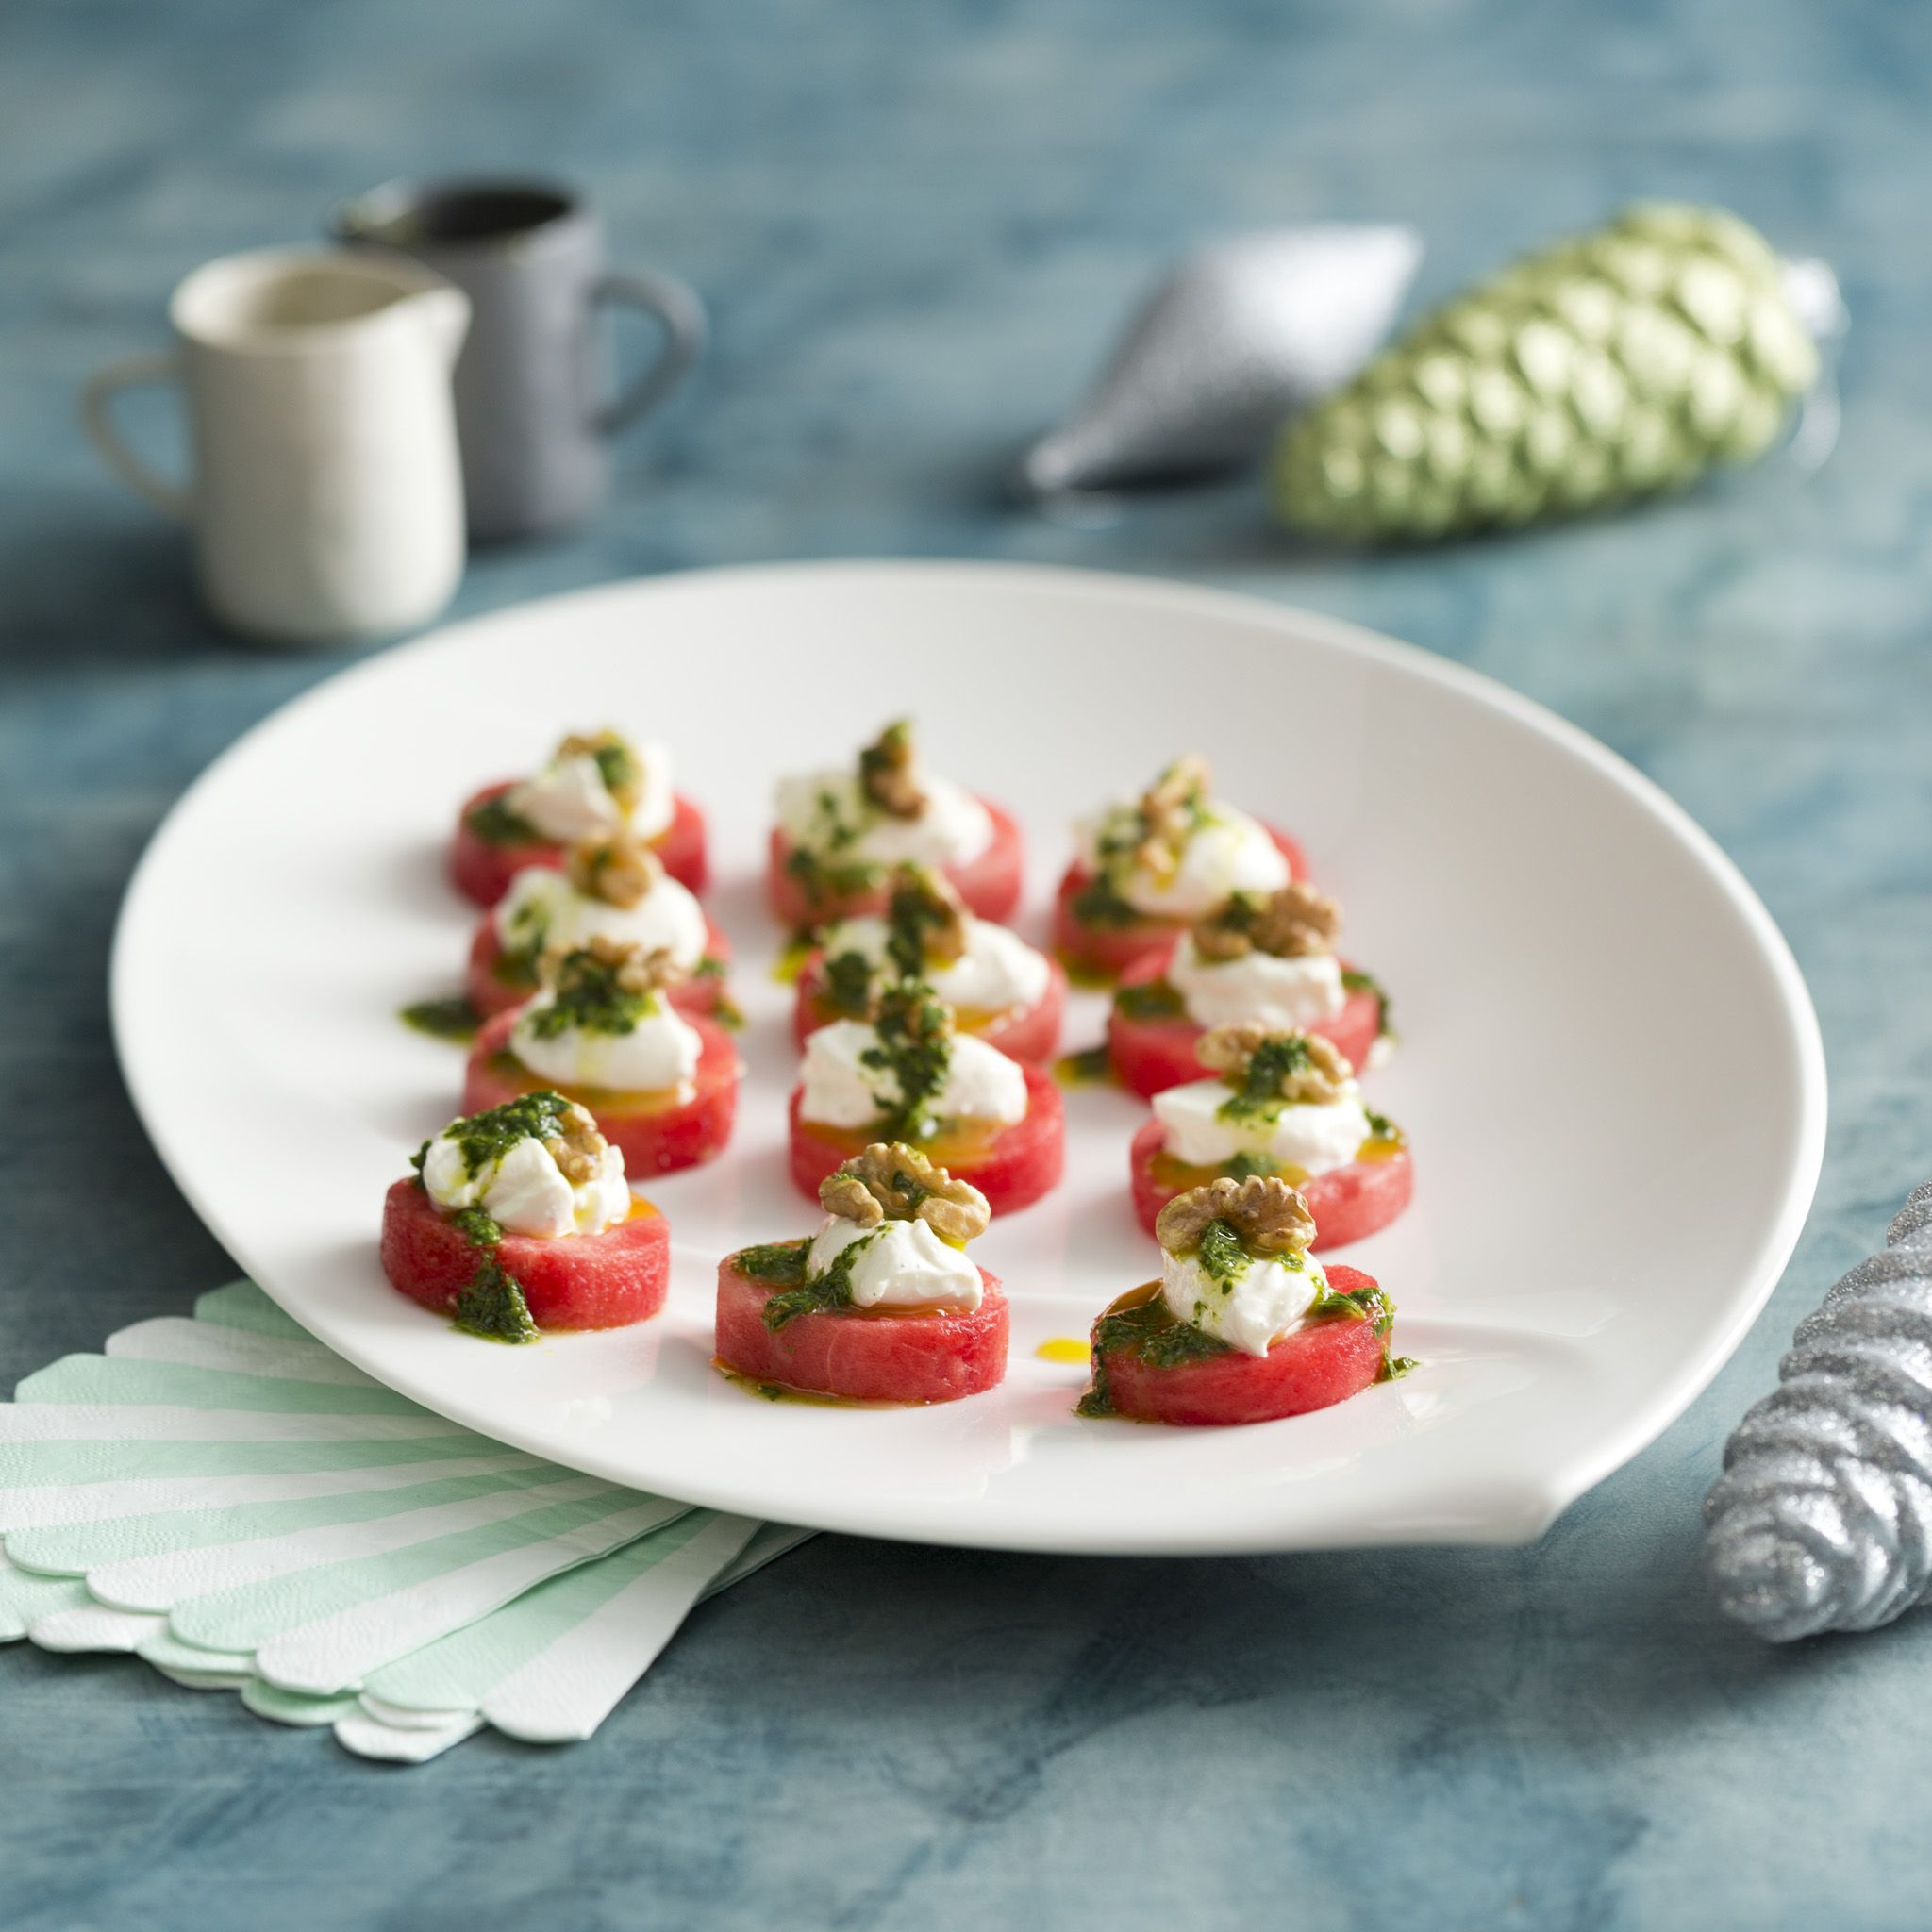 Watermelon canapes with whipped feta and walnuts for Canape hors d oeuvres difference